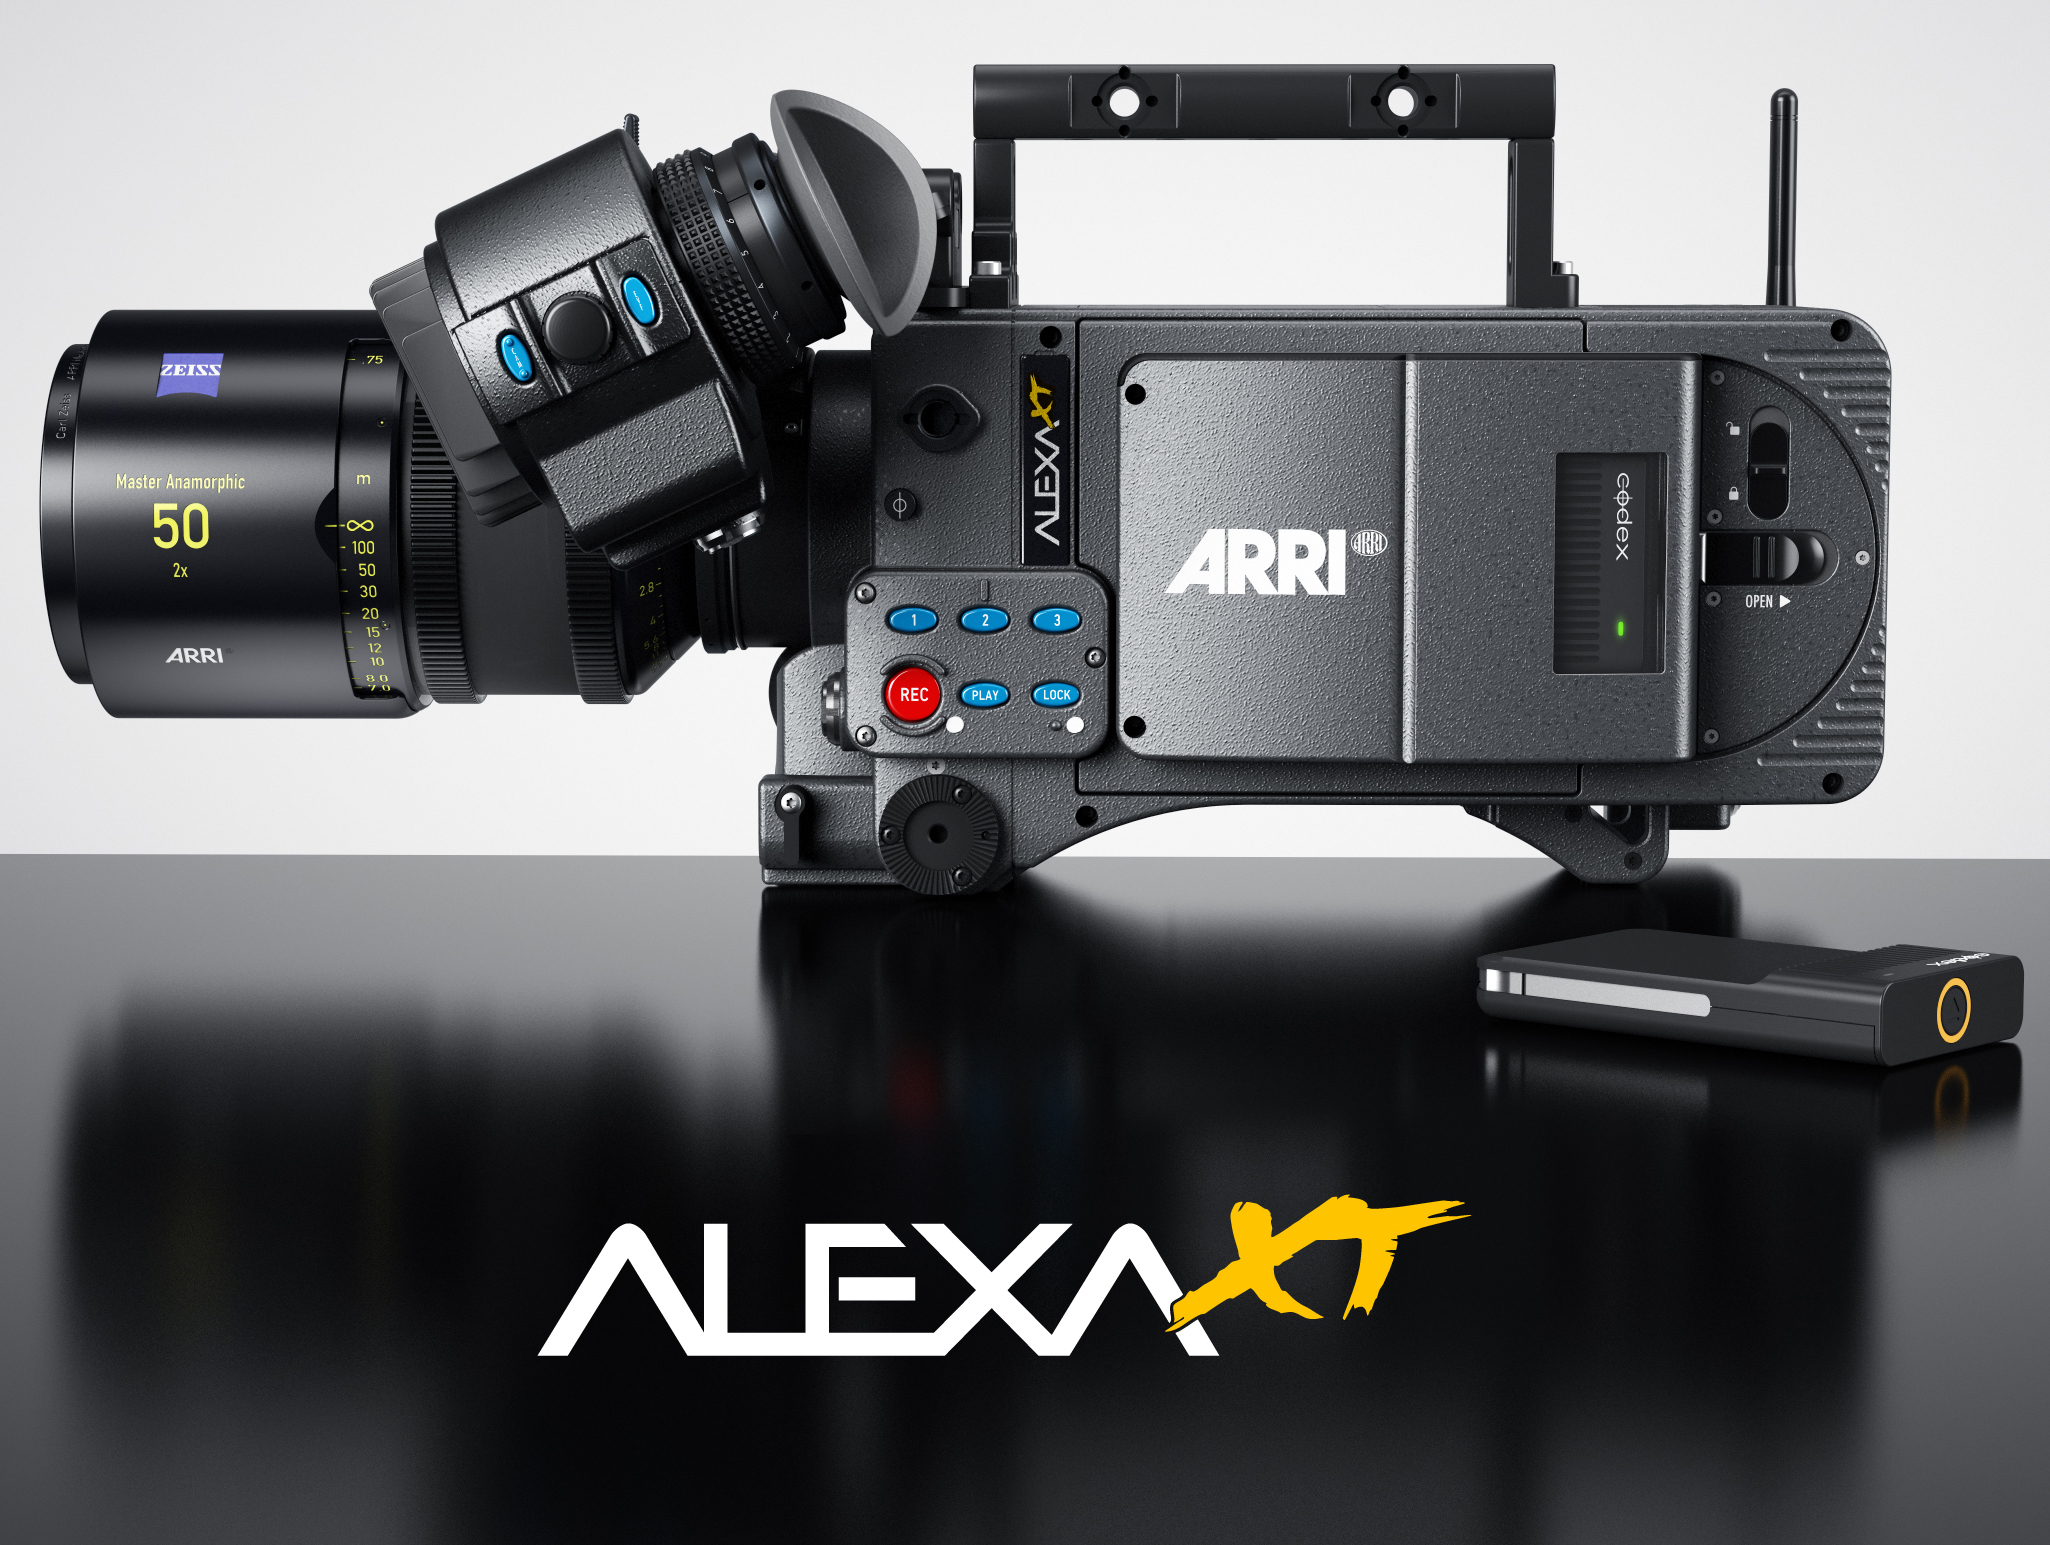 Arri Alexa XT refresh adds in camera RAW recording and in camera ND filter module